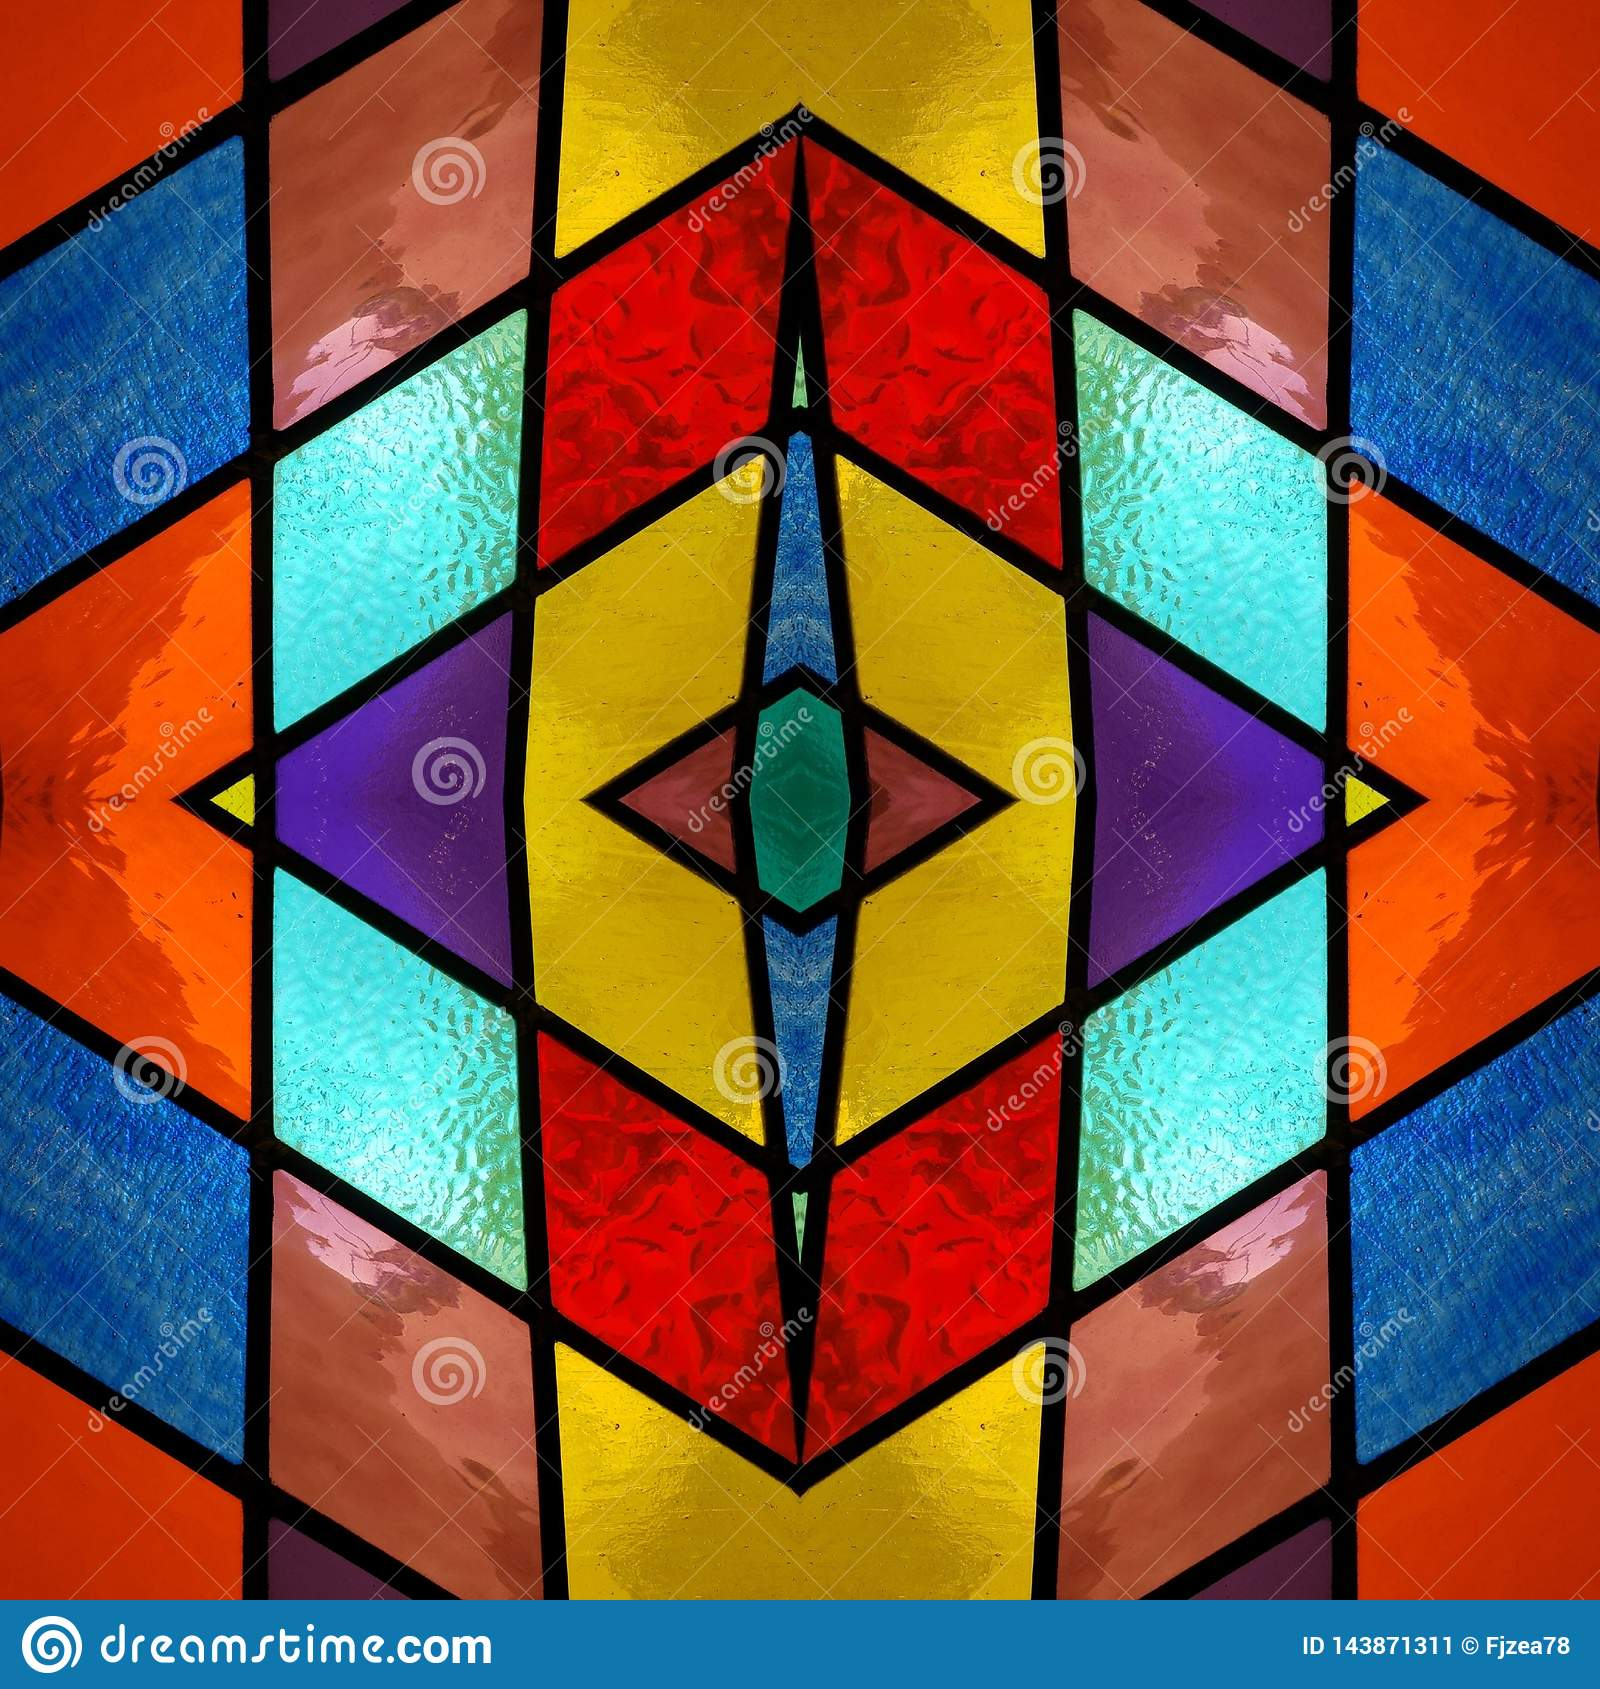 abstract design with stained glass in various colors, material for decoration of windows, background and texture